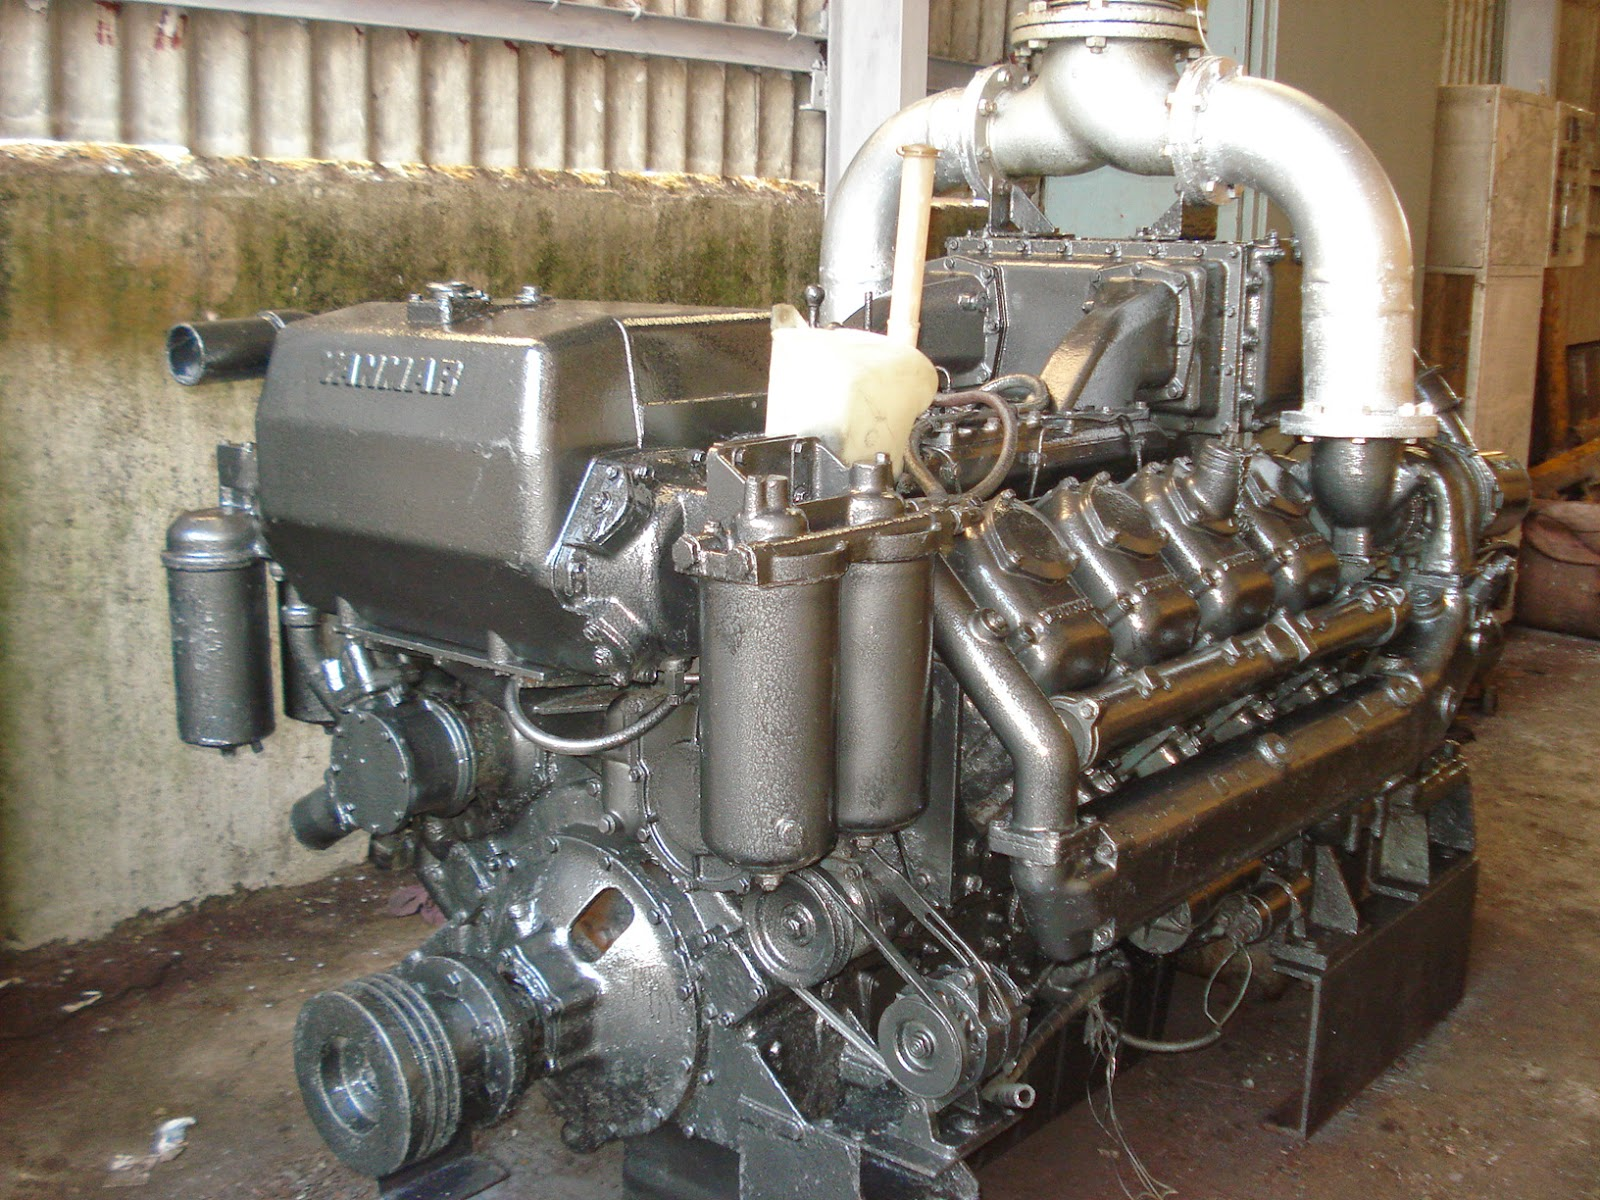 Yanmar Marine Engines and gearbox